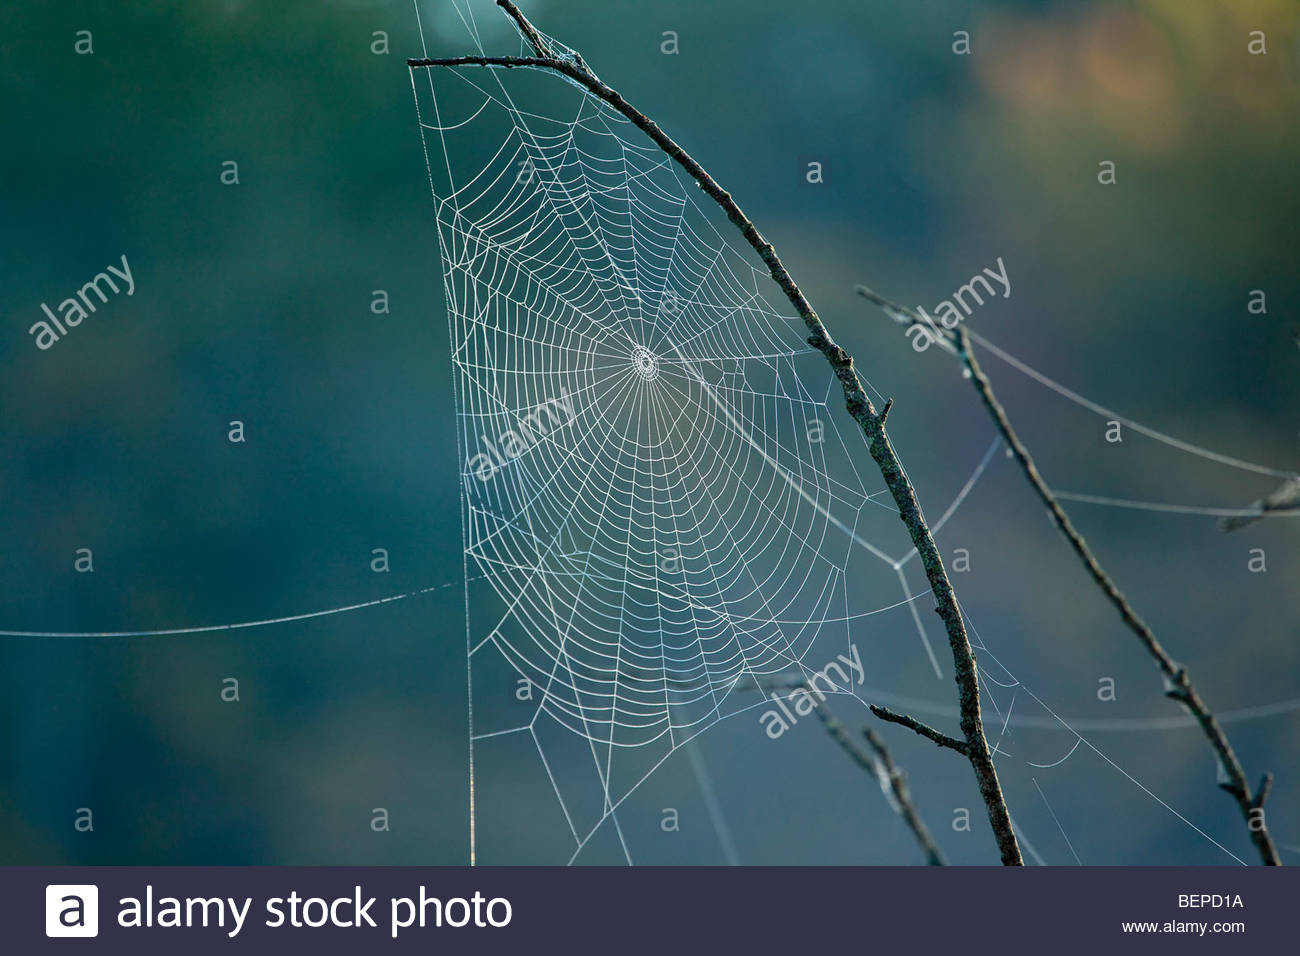 Spider's orb web in Rouge Park an urban wilderness in Toronto Ontario Canada - Stock Image